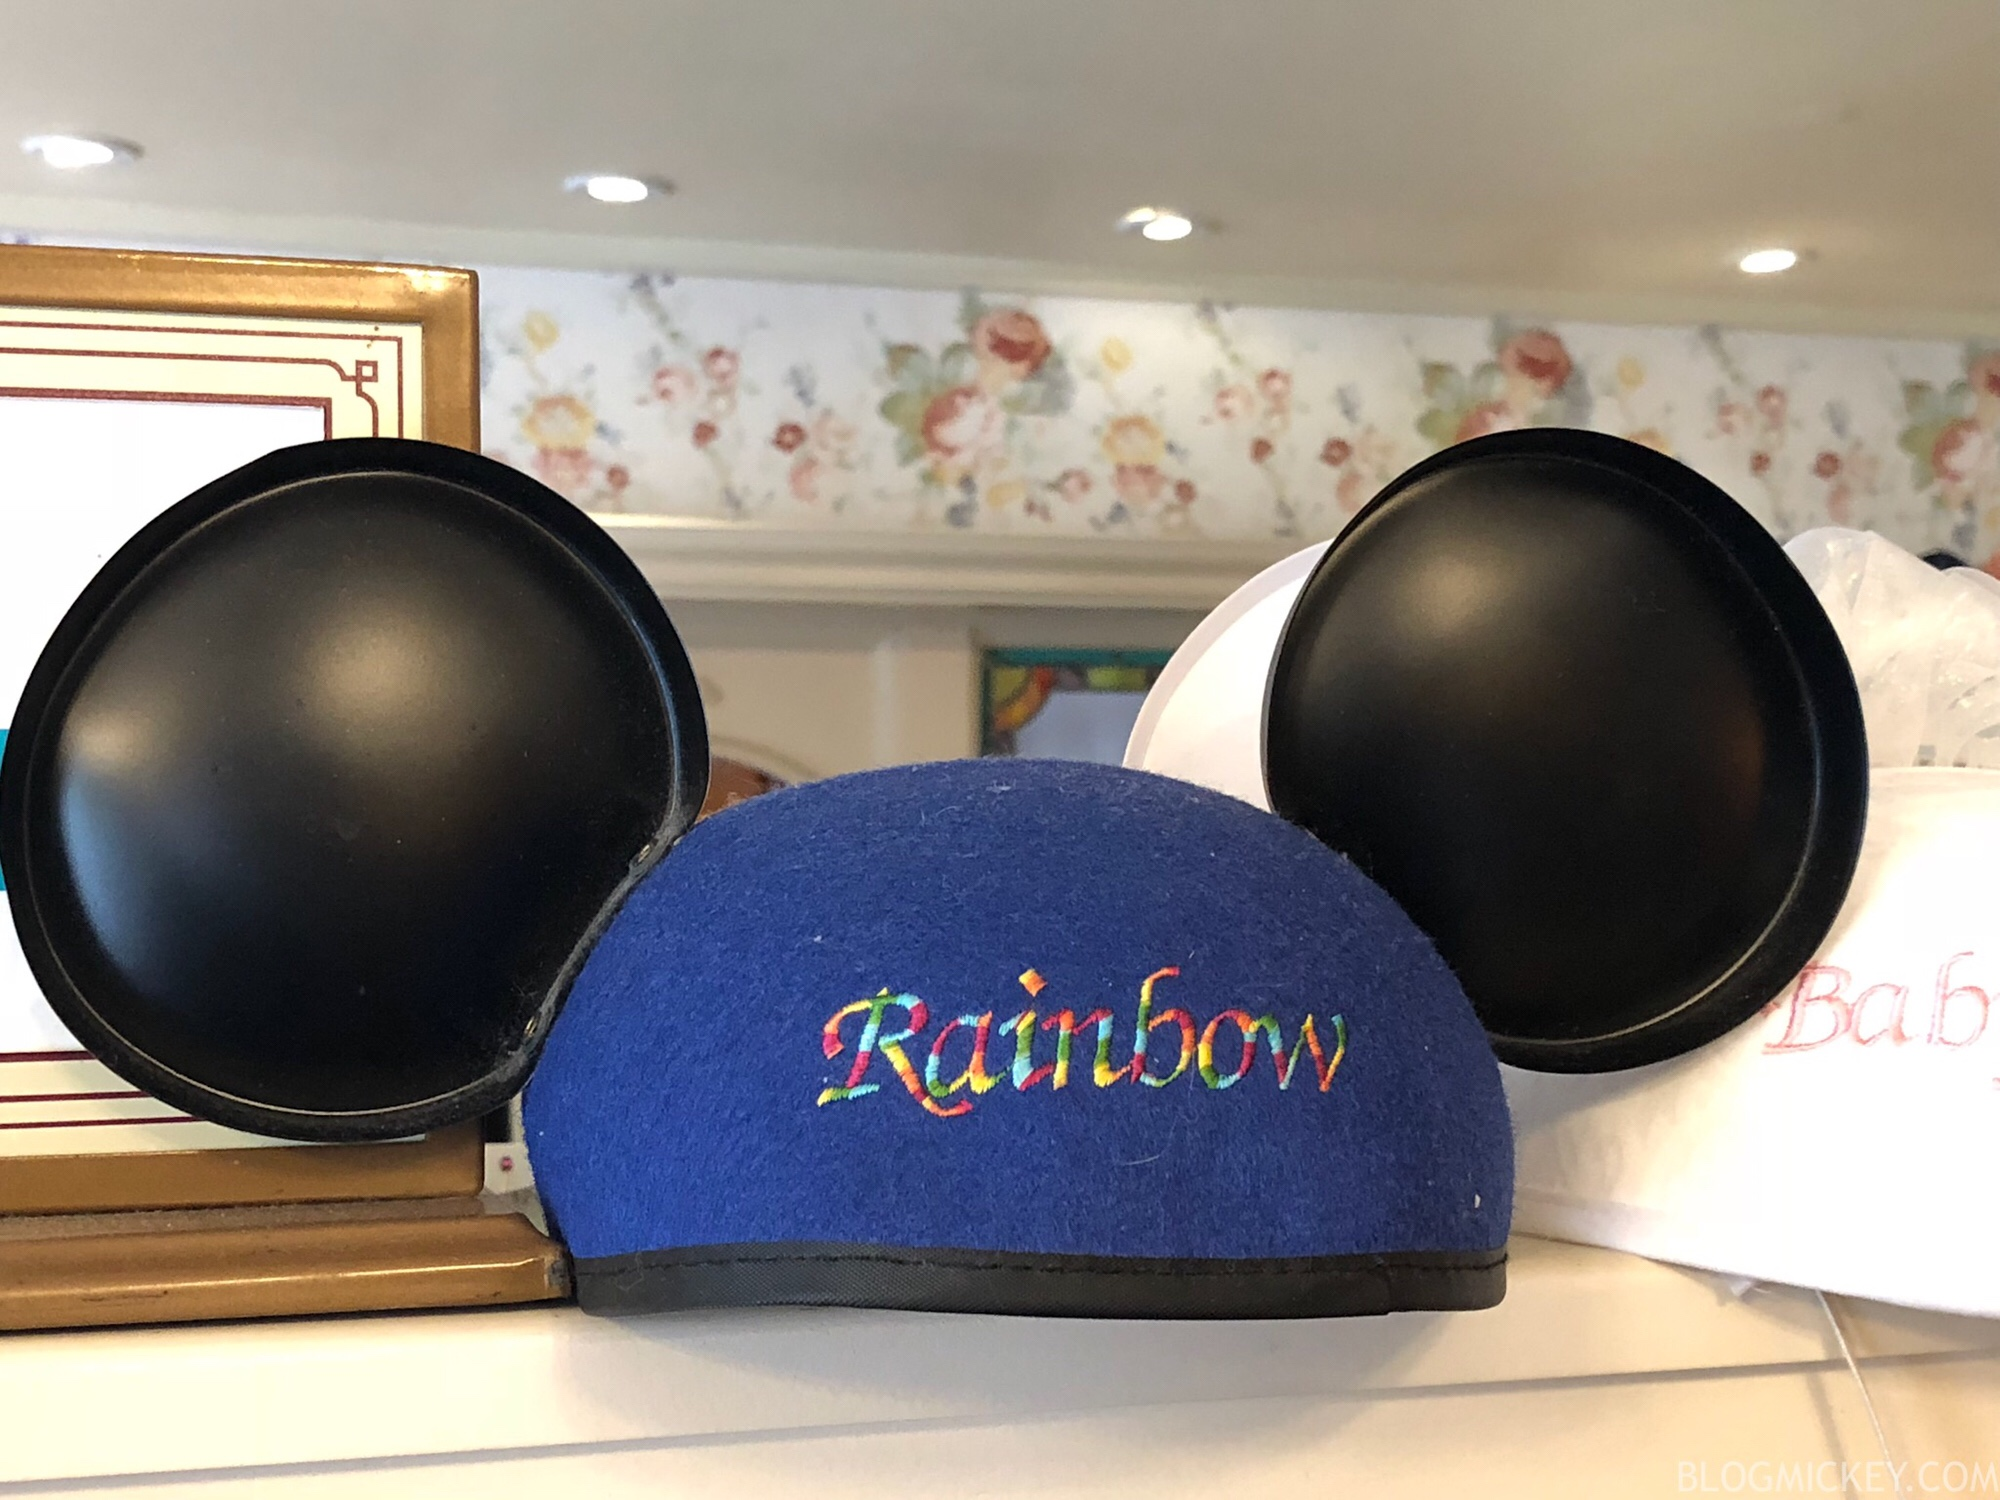 c281a8a787e NEW Pride Ear Hat Available at Walt Disney World - Blog Mickey